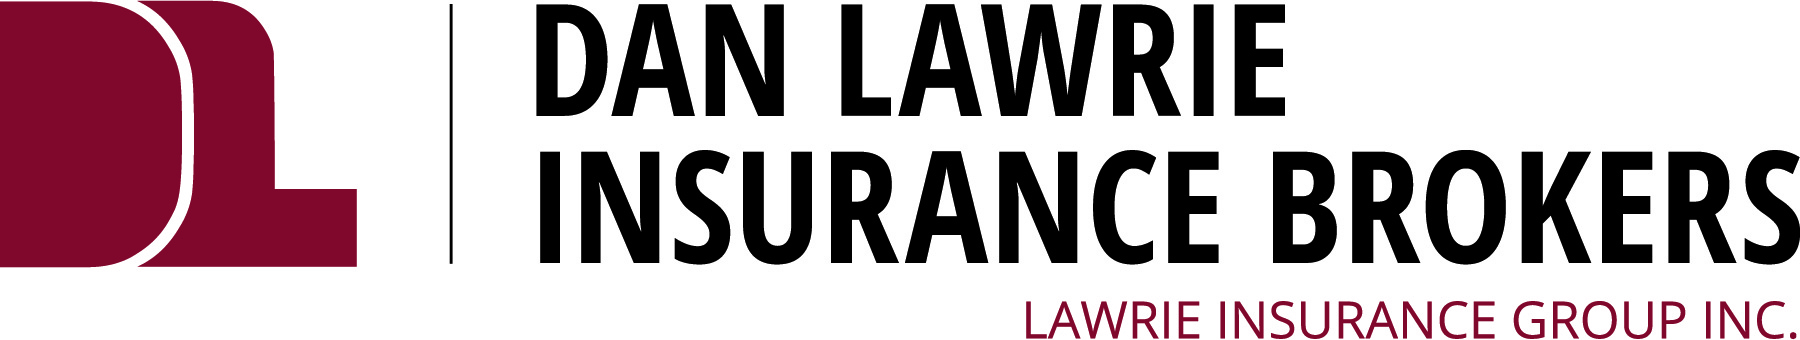 Dan Lawrie Insurance Brokers Ltd.- logo